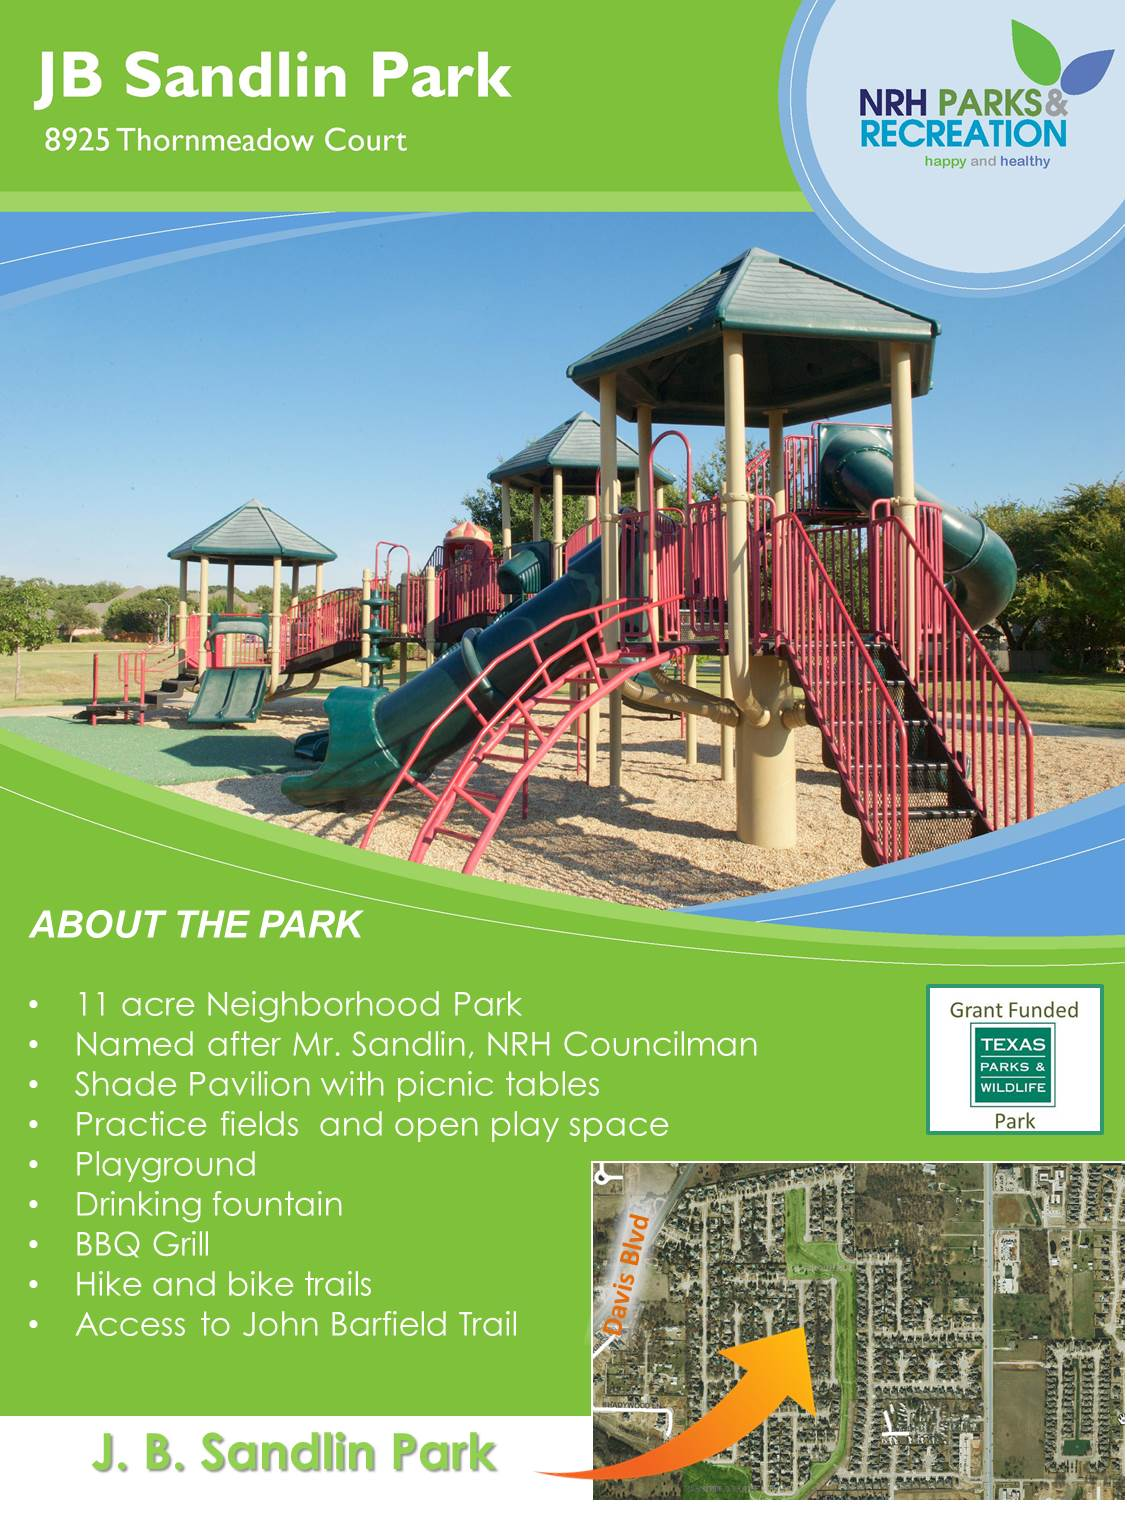 JB Sandlin Park Fact Sheet.jpg